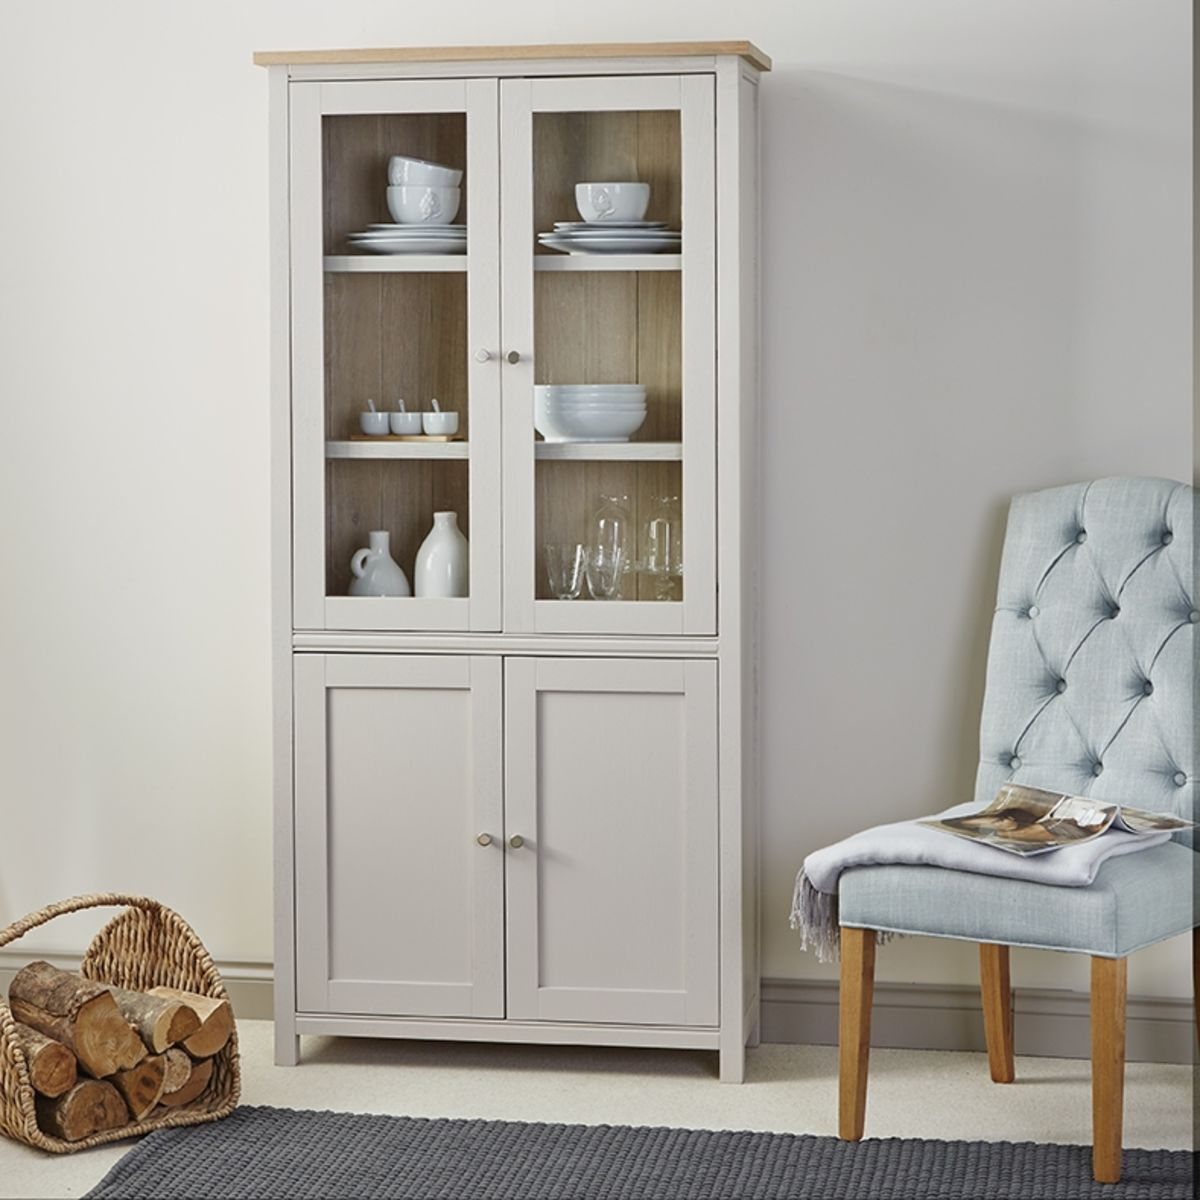 Rushbury Painted Display Cabinet Was £999.00 Now £899.00